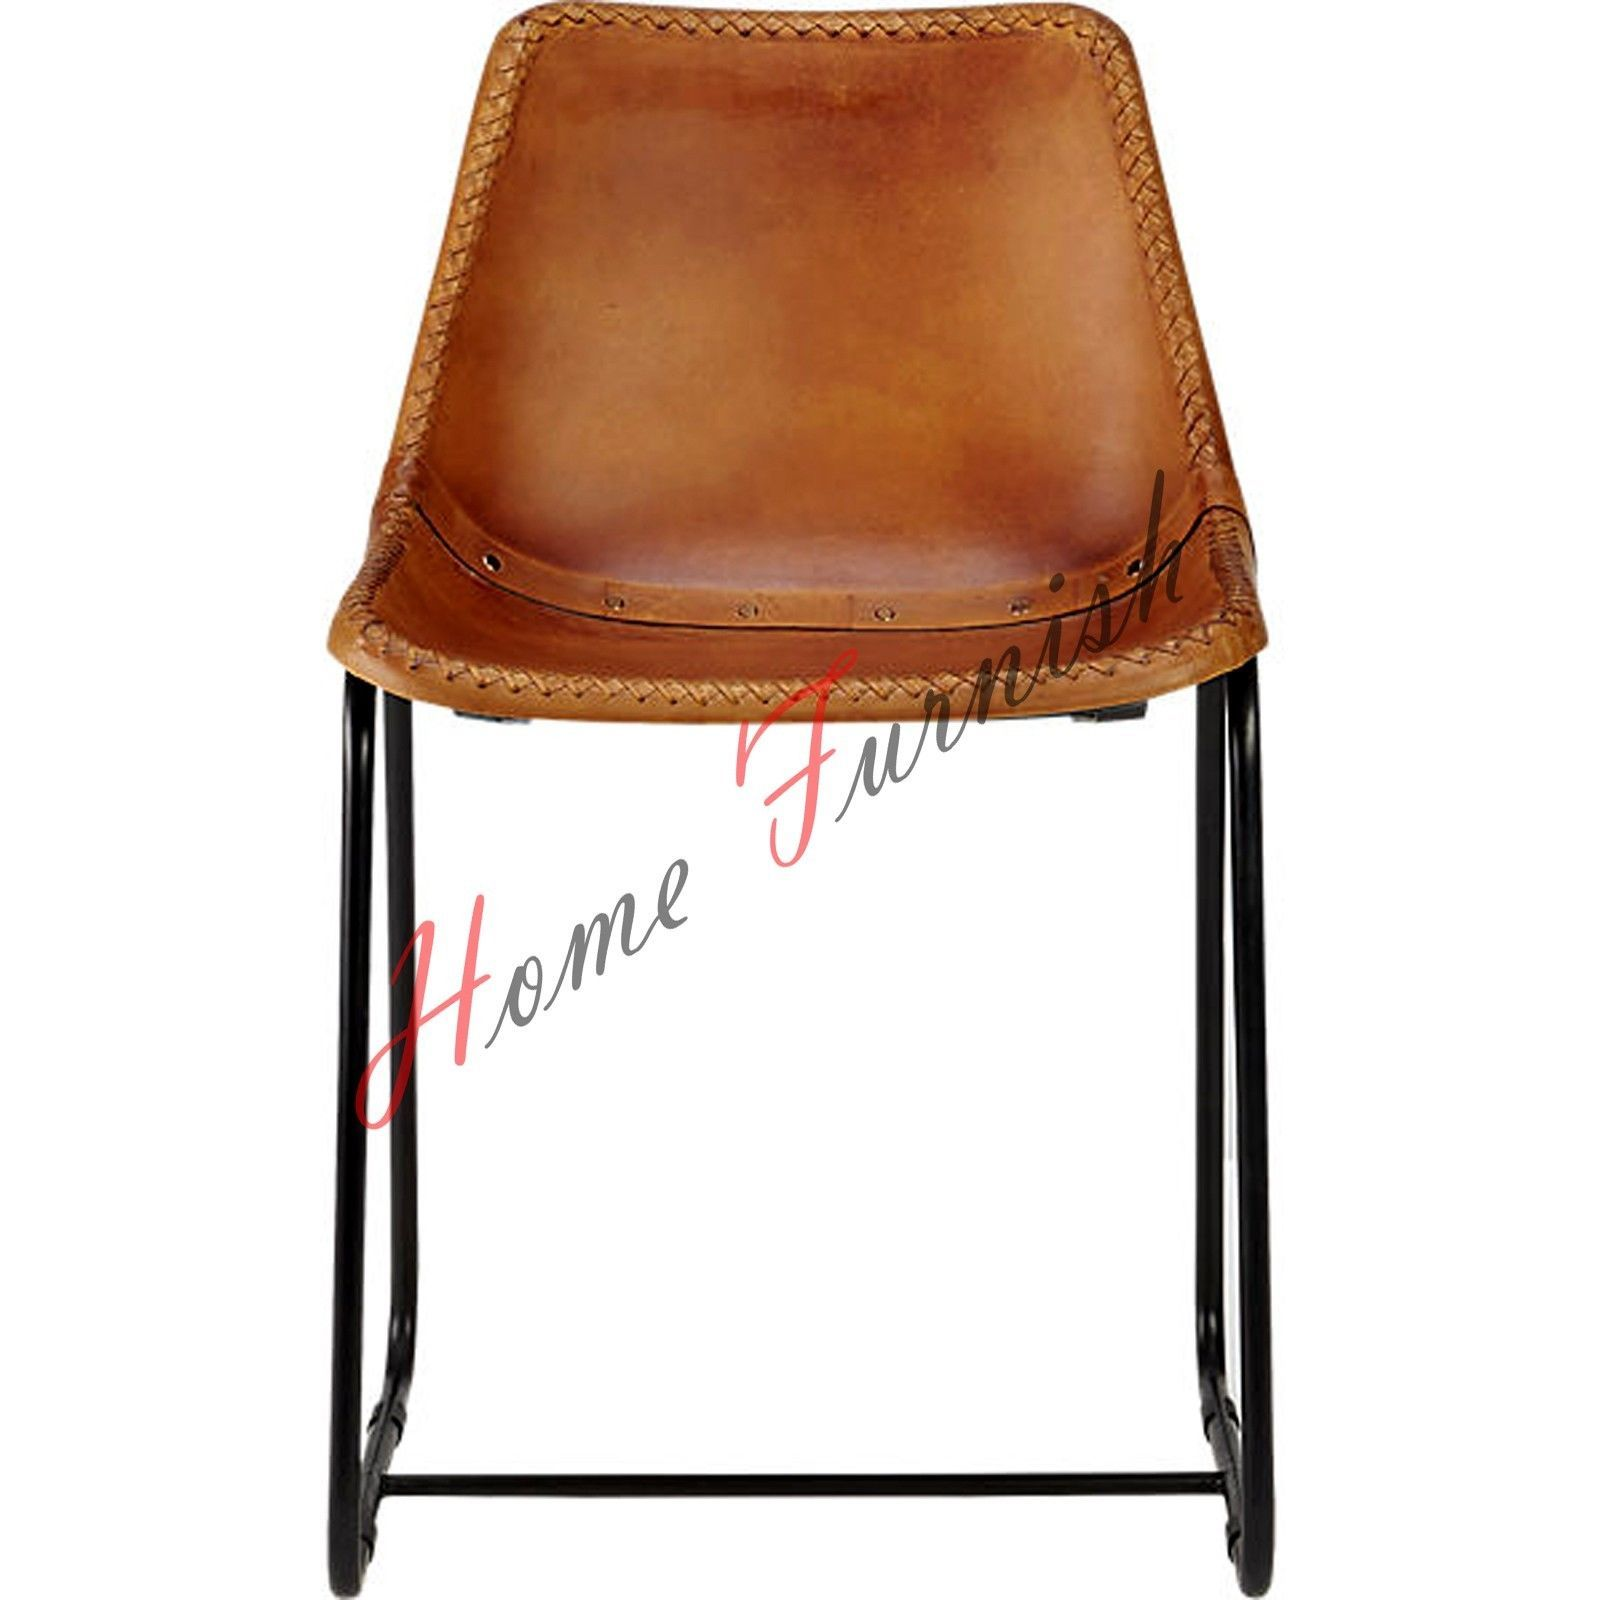 industrial style dining chairs wedding hire london 4 chair leather brown